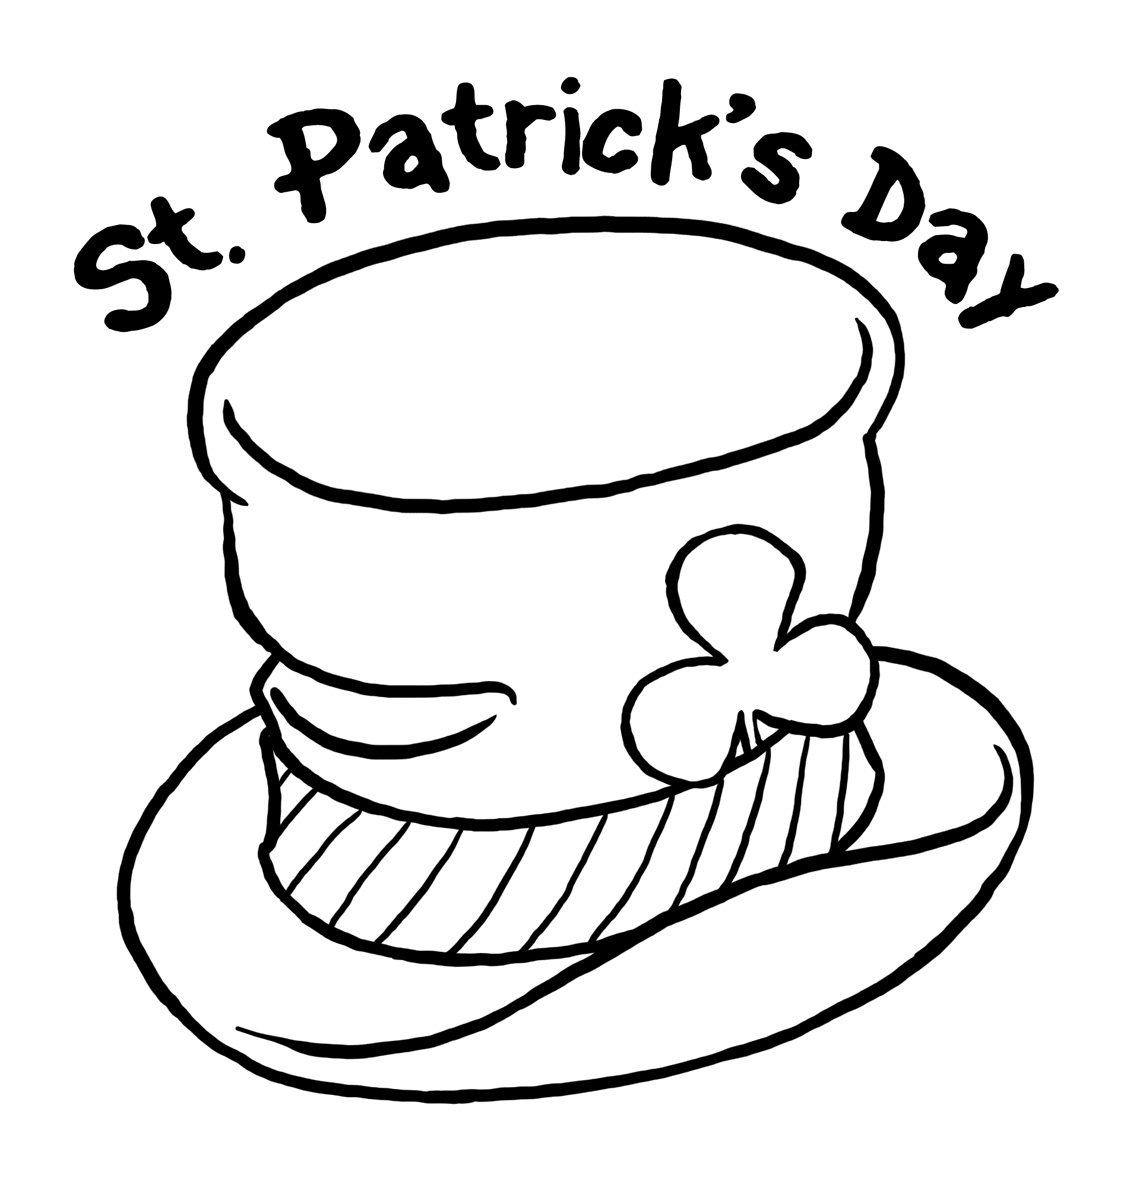 St Patricks Day Coloring Pages St. Patrick's Day